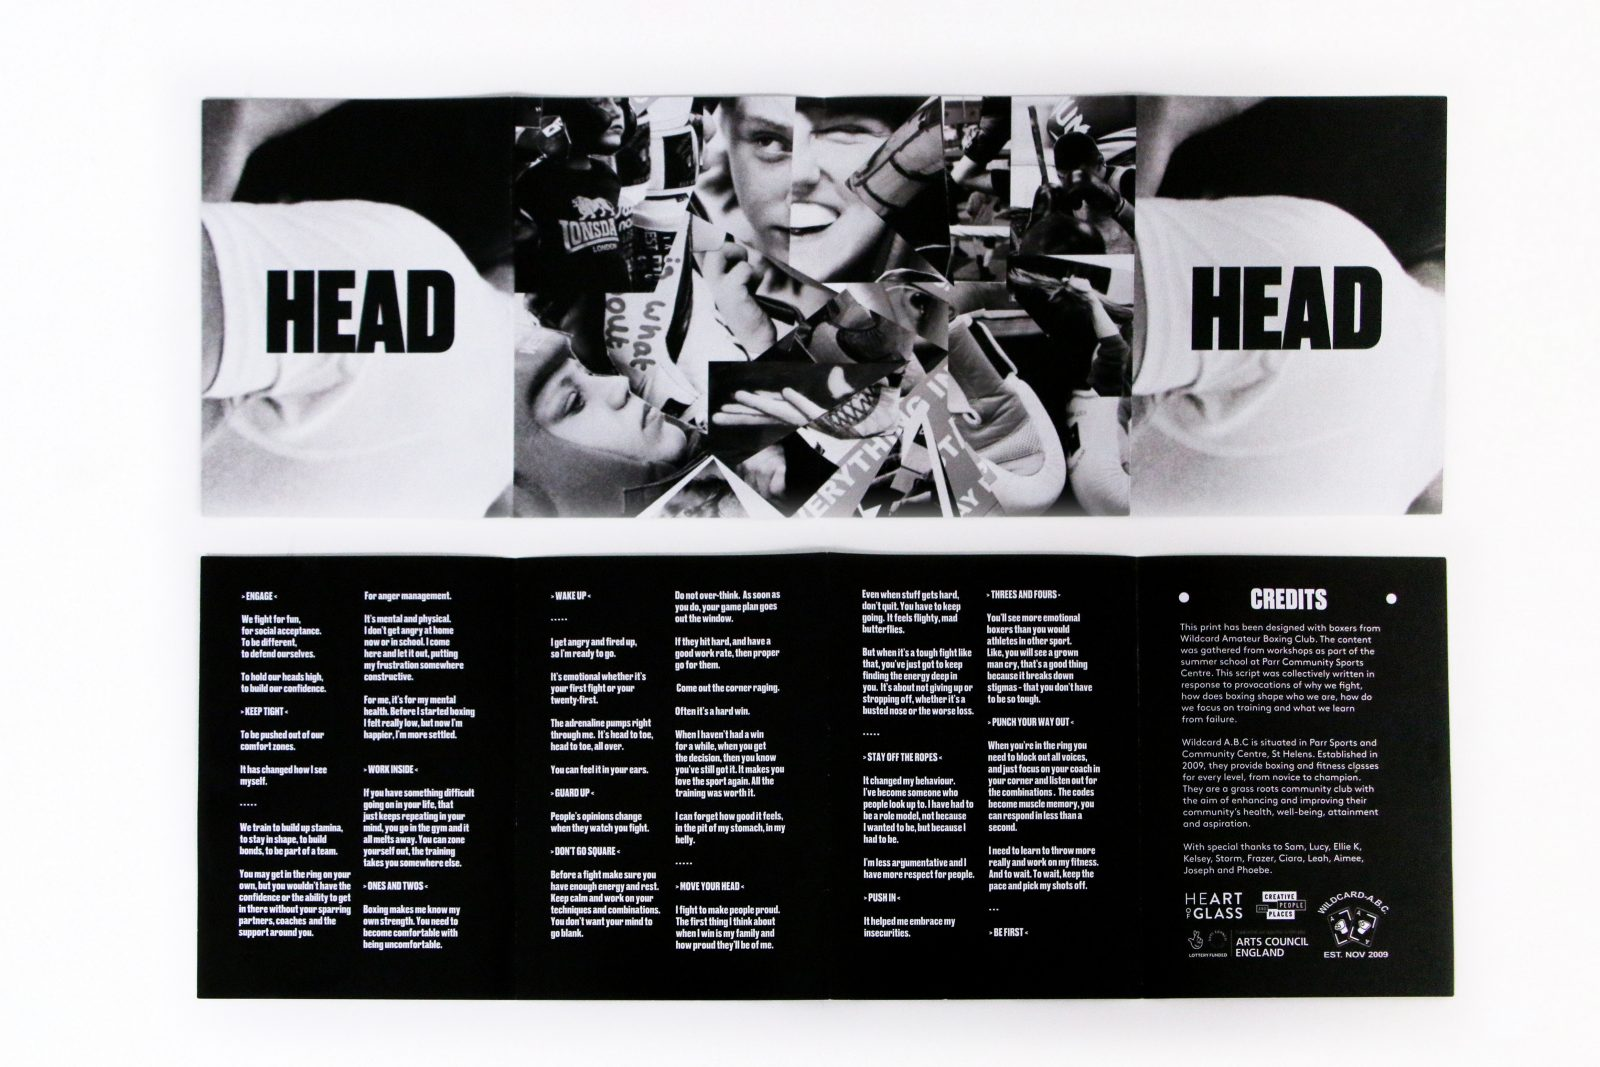 A black and white magazine spread image including a collage of faces and a large amount of text.